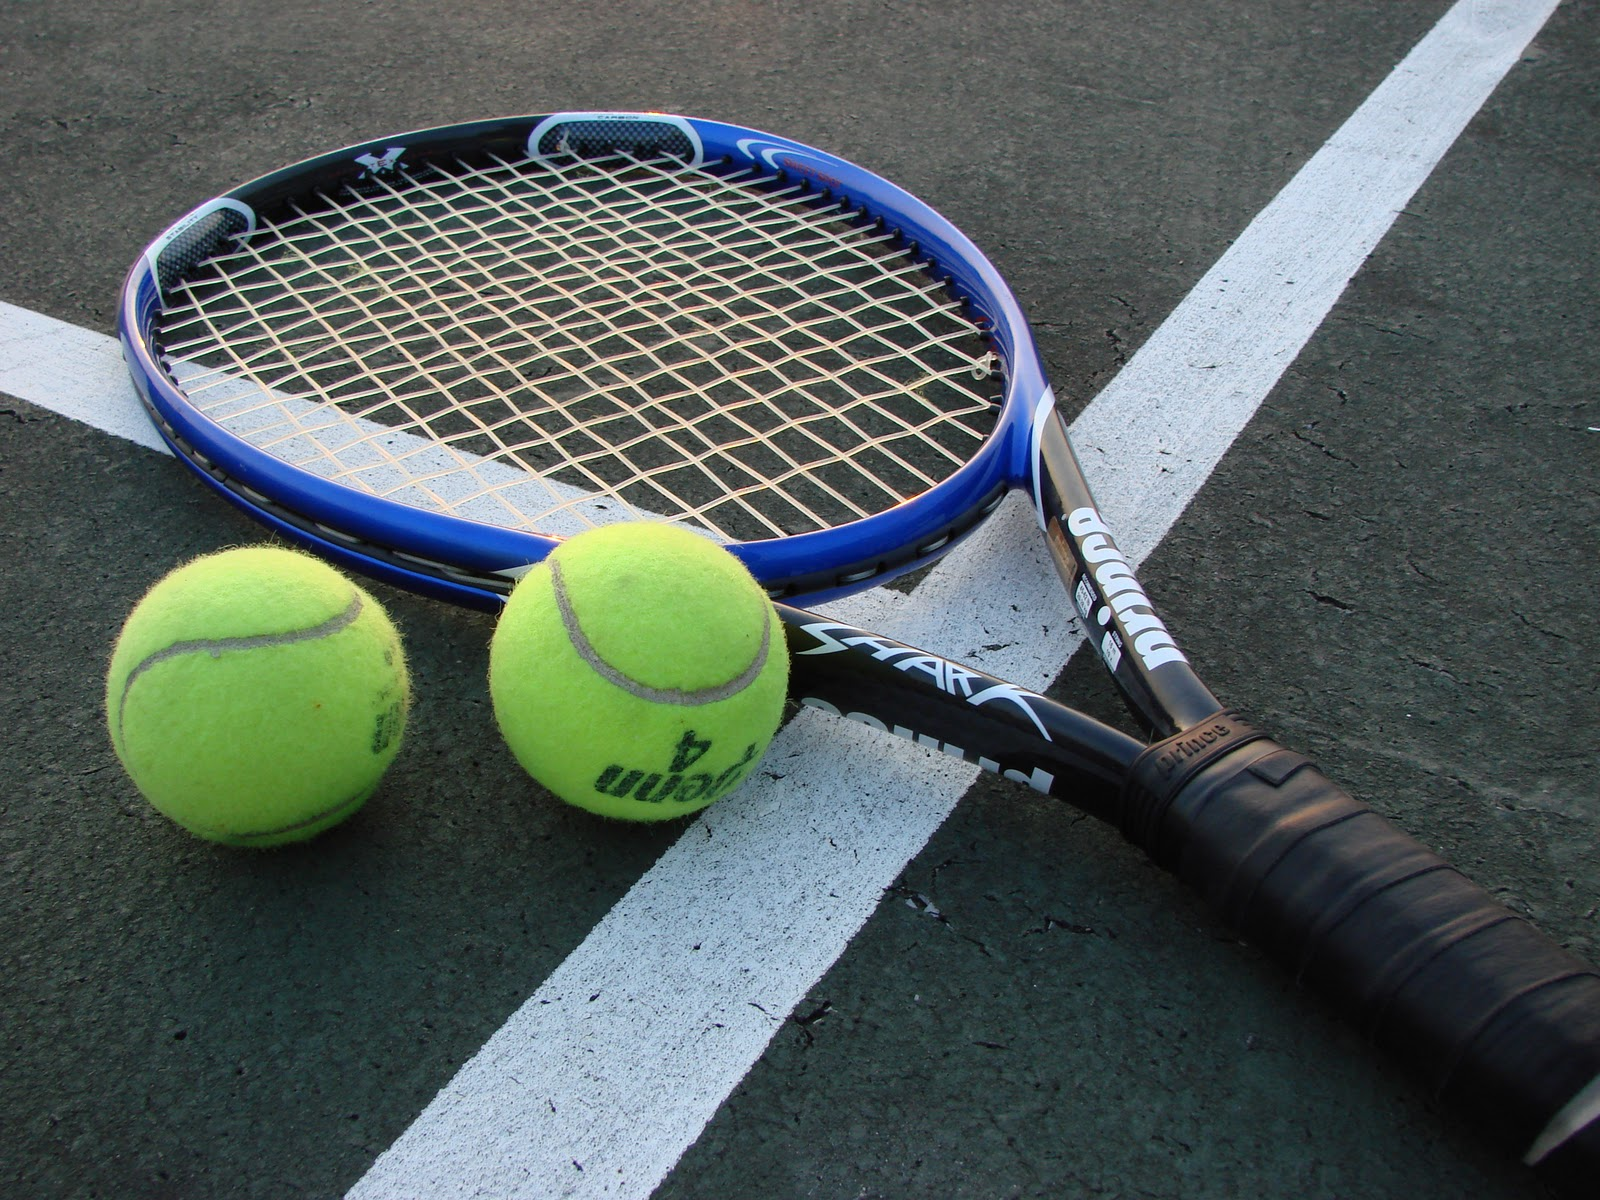 Image result for photos of Tennis game